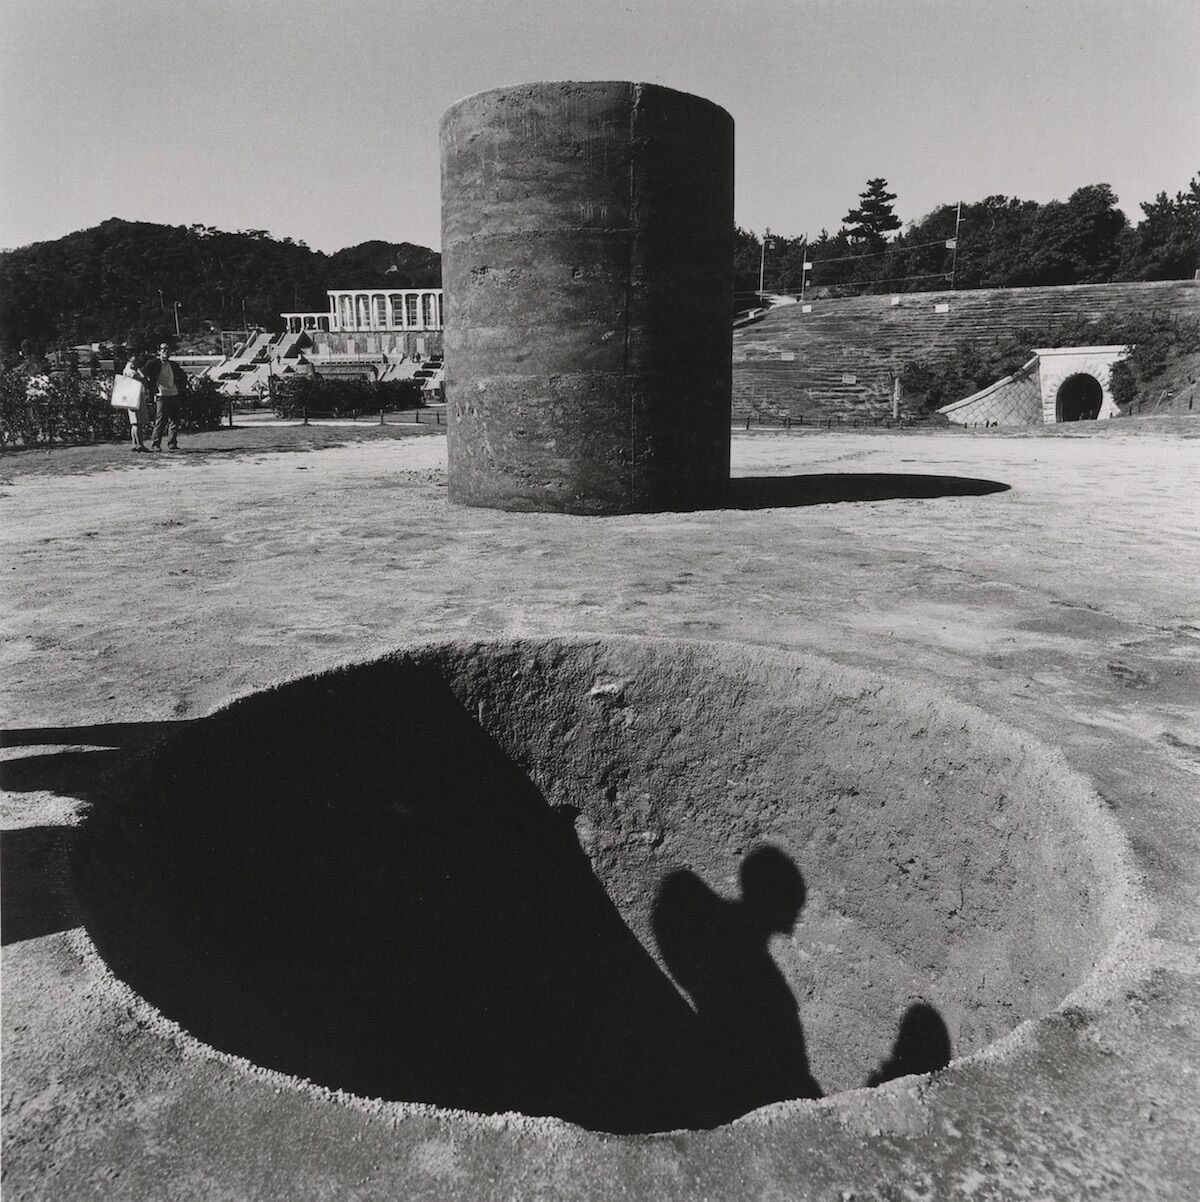 Nobuo Sekine, Phase–Mother Earth (1968), installation view at the 1st Kobe Suma Rikyu Park Contemporary Sculpture Exhibition, Kobe, Japan, 1968. Photo by Osamu Murai. © Nobuo Sekine.